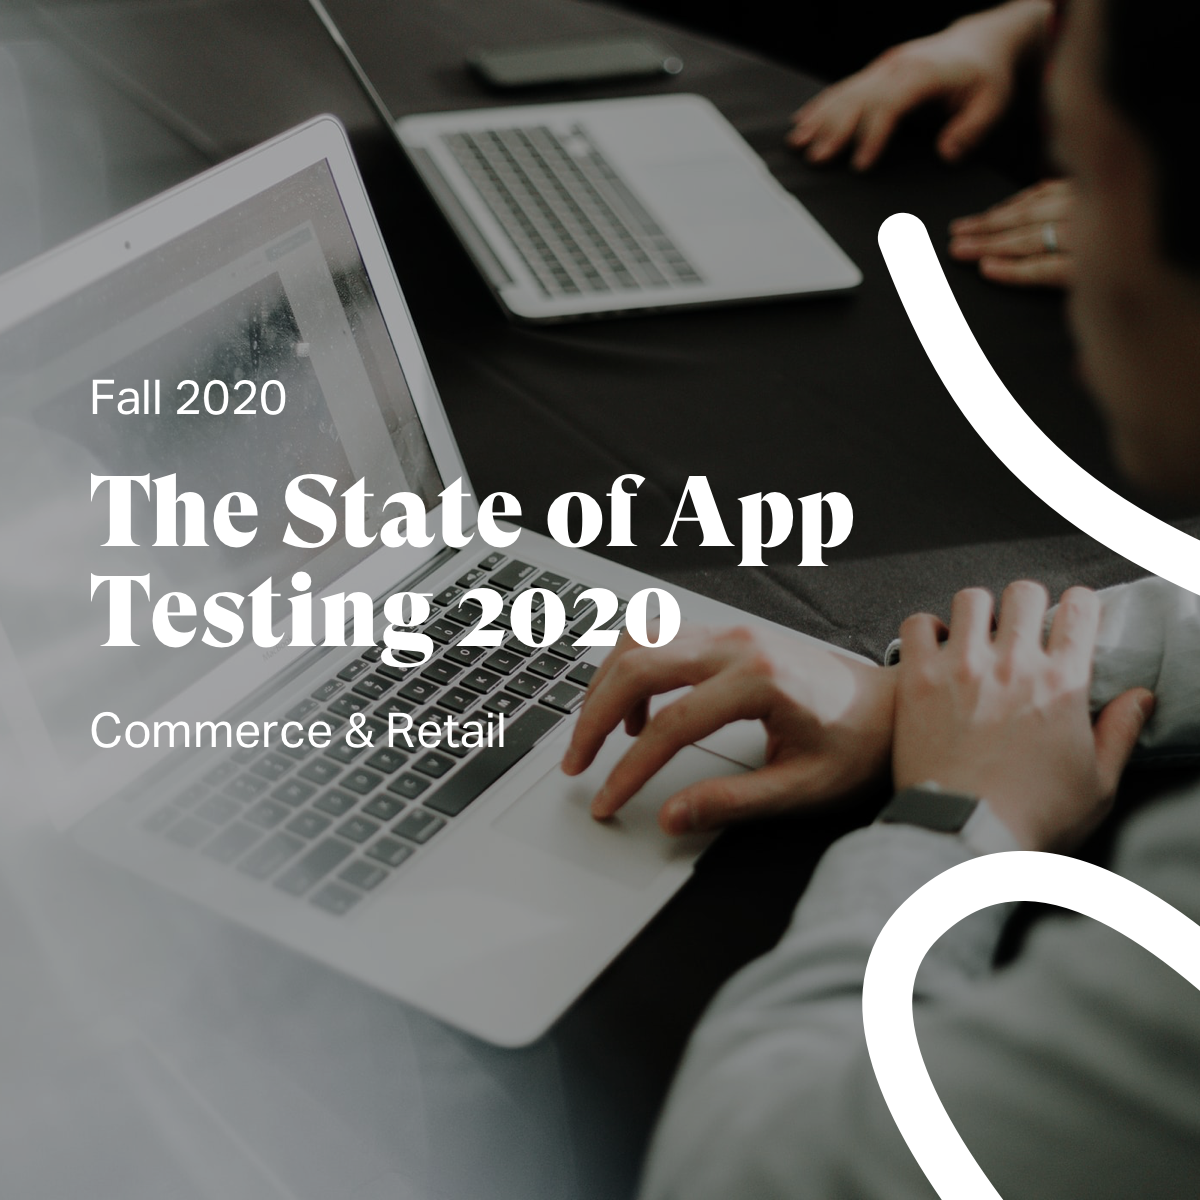 app-industry-report-retail-commerce-fall-2020-1200x1200px